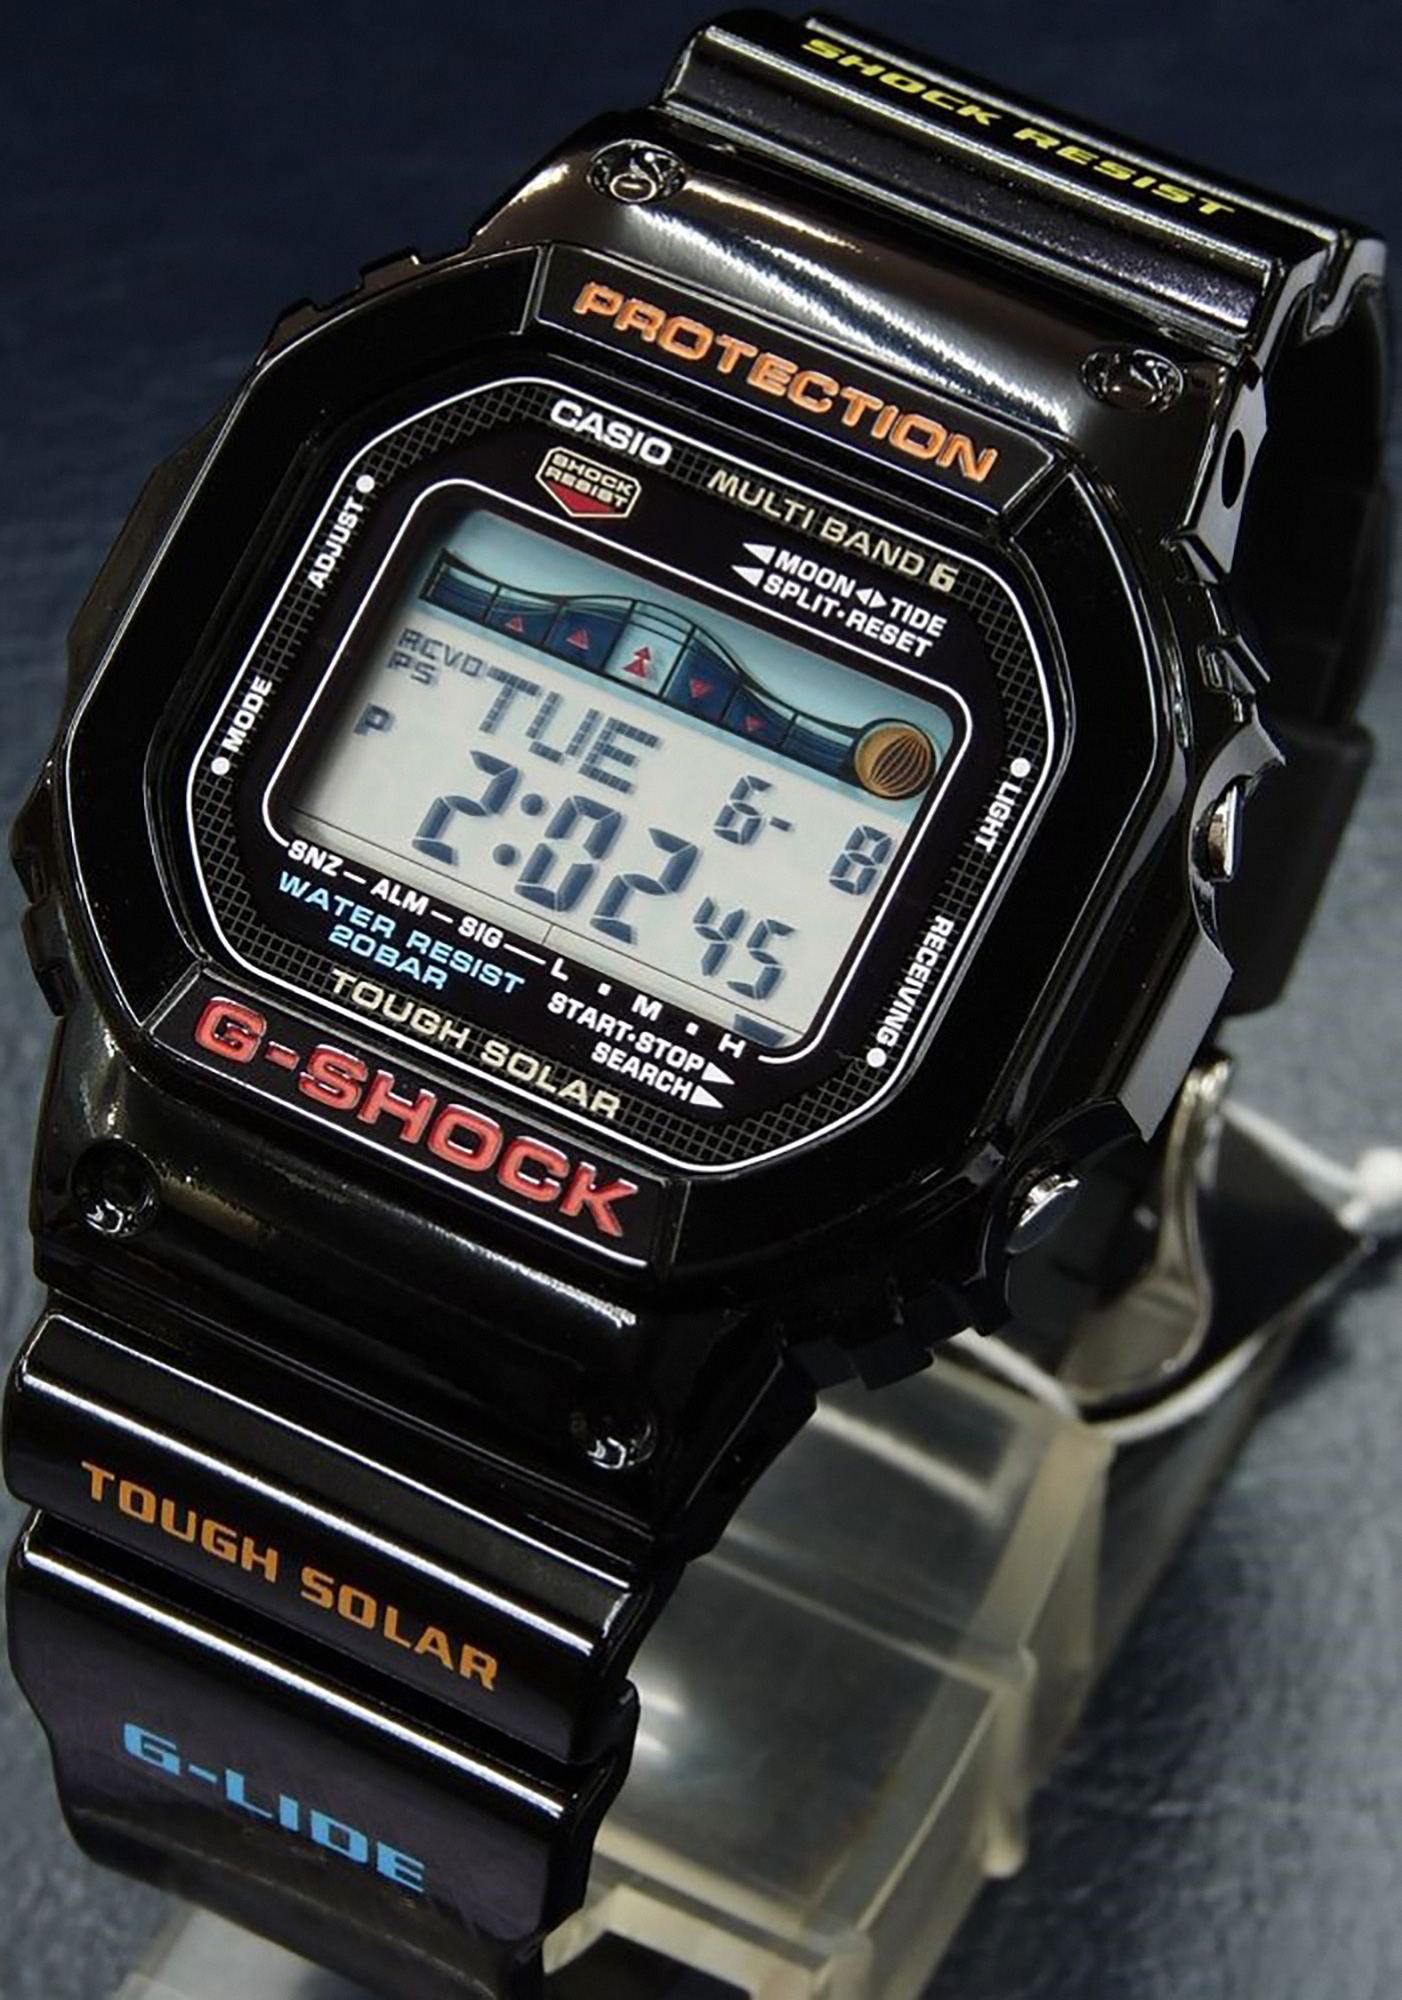 Casio G-Shock GWX-5600-1JF Multiband 6 Tough Solar Digital Grey Black Resin Machtwatch